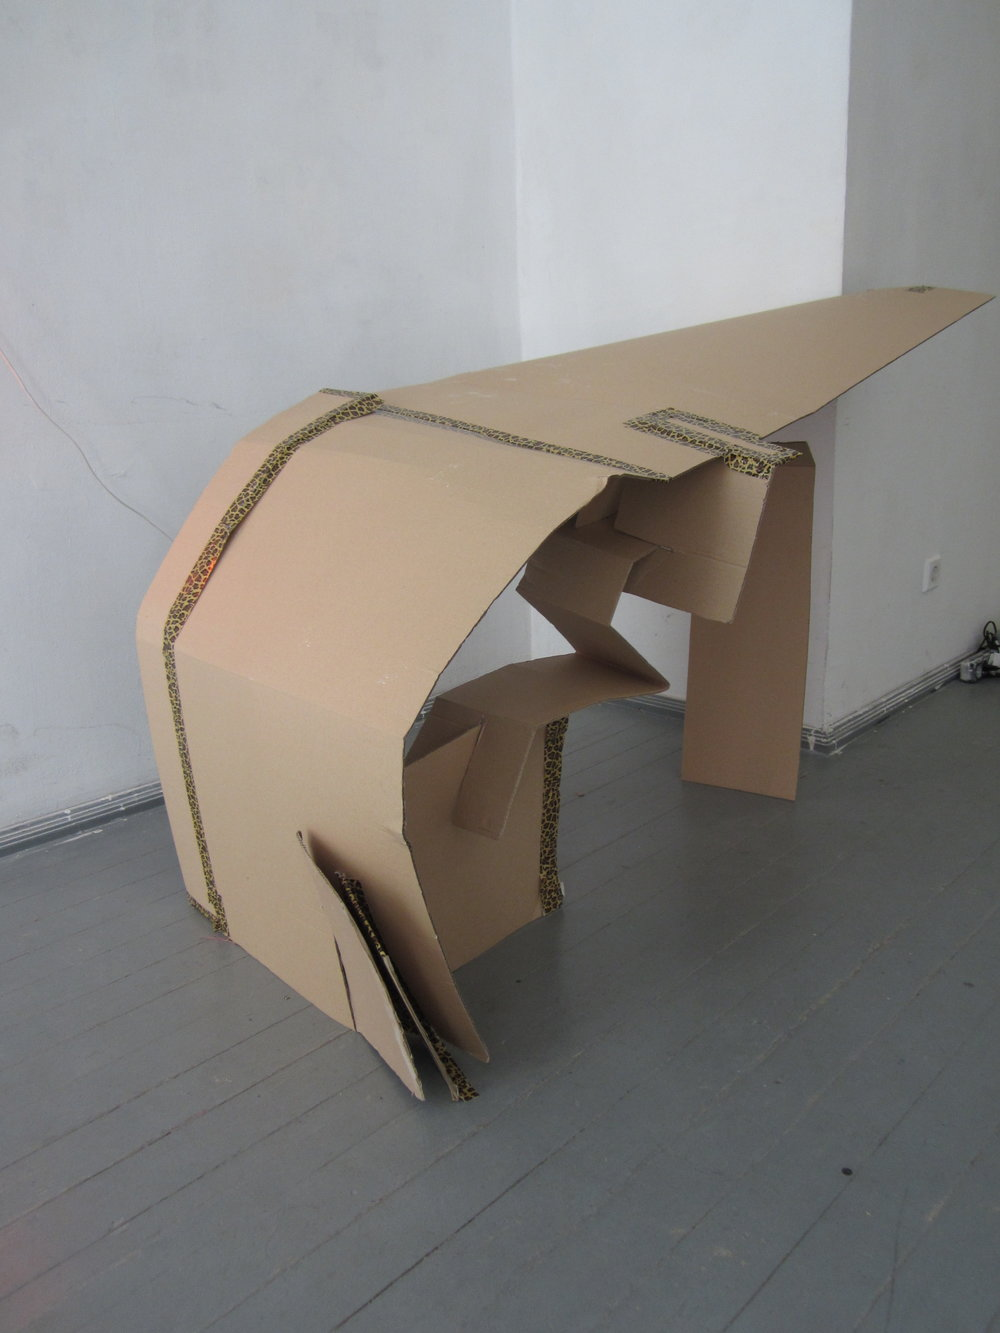 FlatPat (bent)    – leopard print gaffer tape and cardboard against wall, Labor Gallery, Budapest, dimensions decreasing, 2015